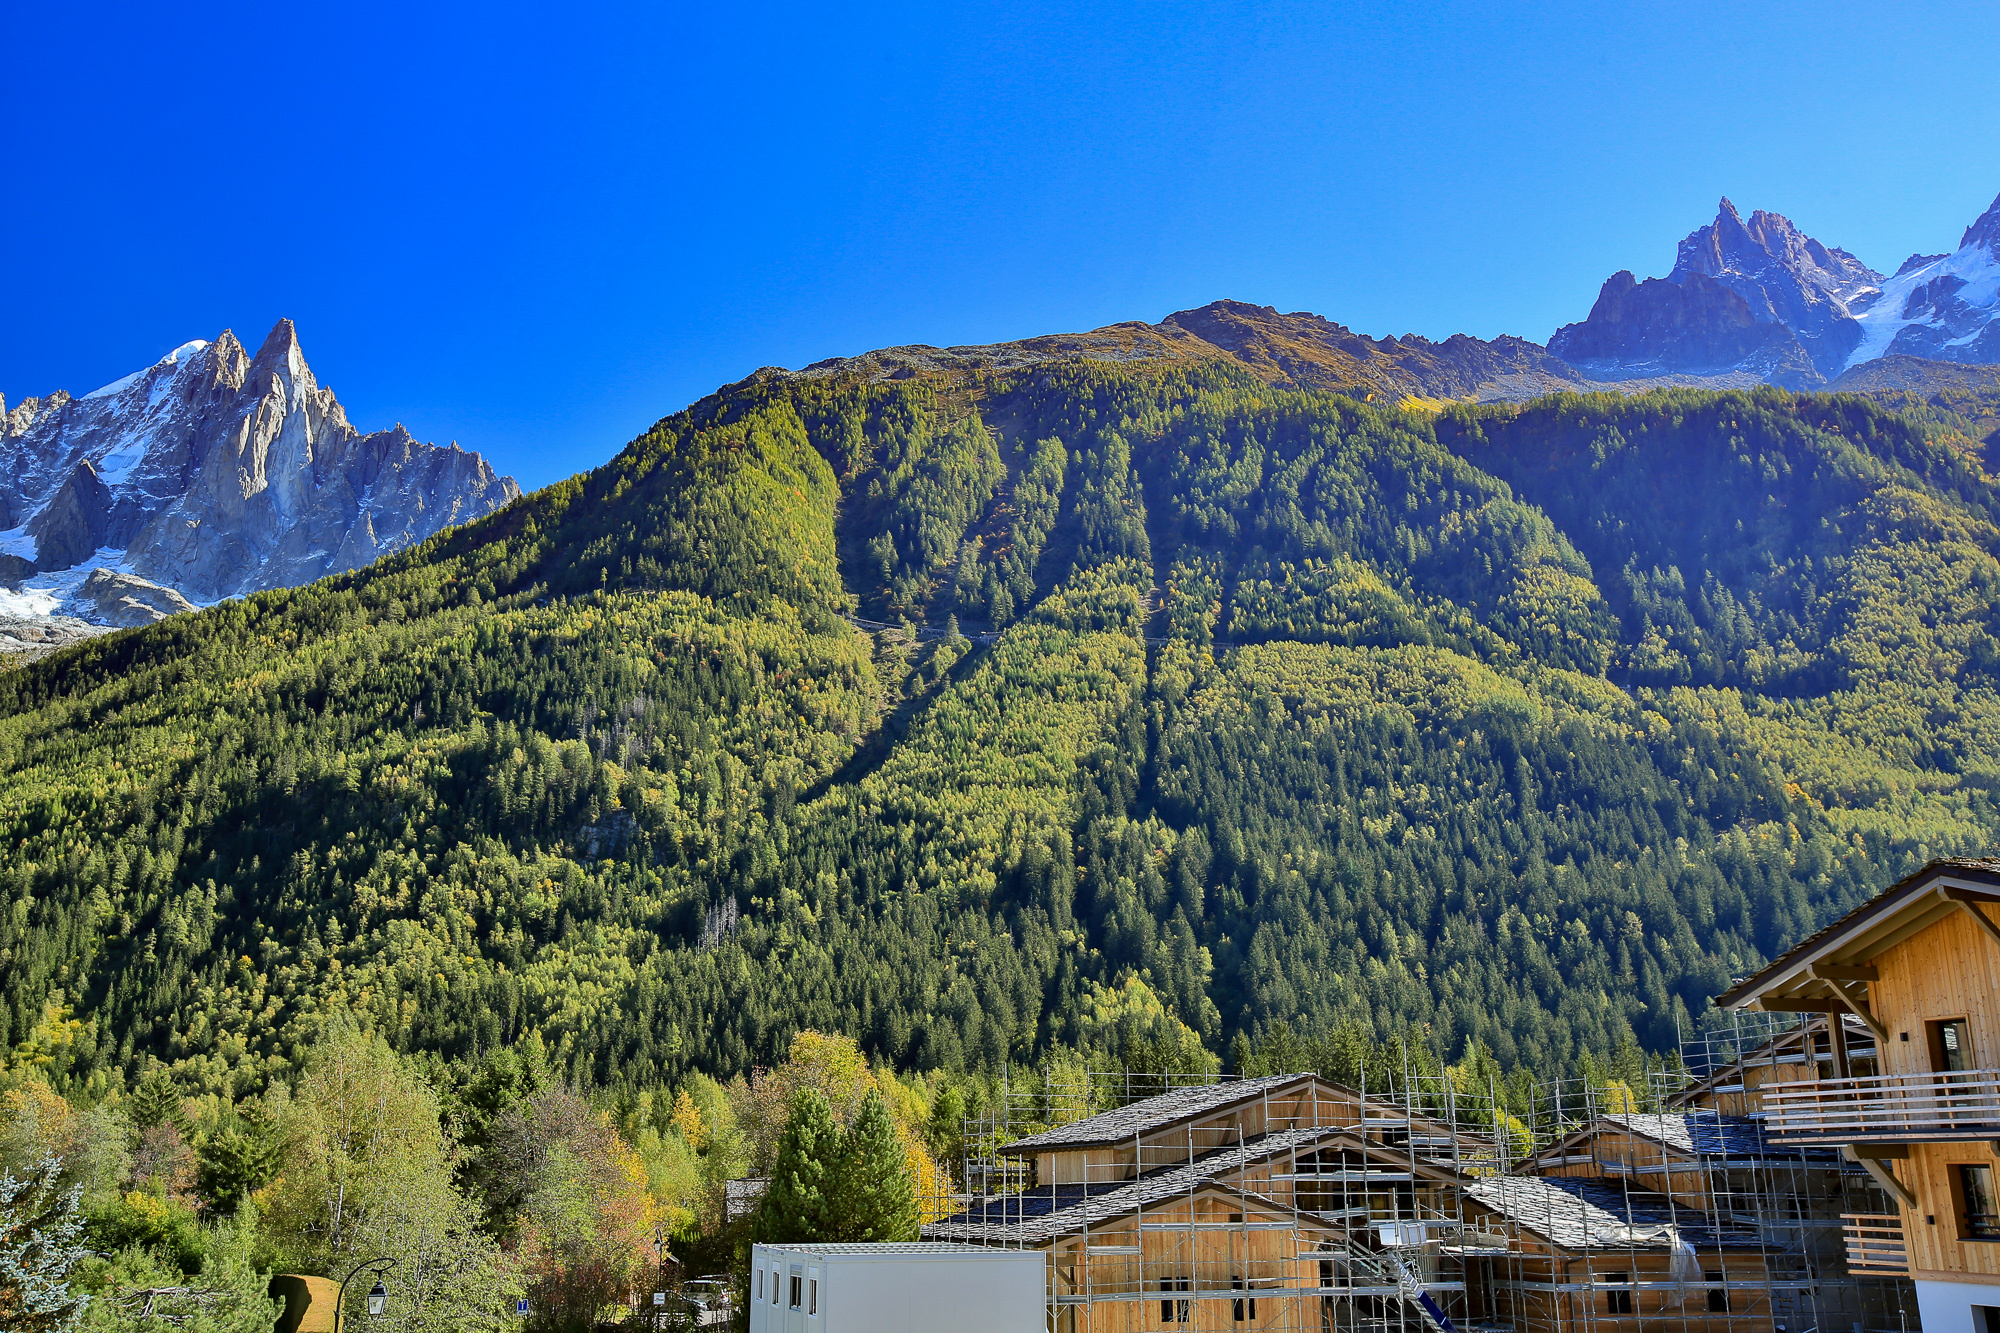 2 BEDROOM 63 M2 APARTMENT IN NEW LUXURY DEVELOPMENT, CHAMONIX LES PRAZ